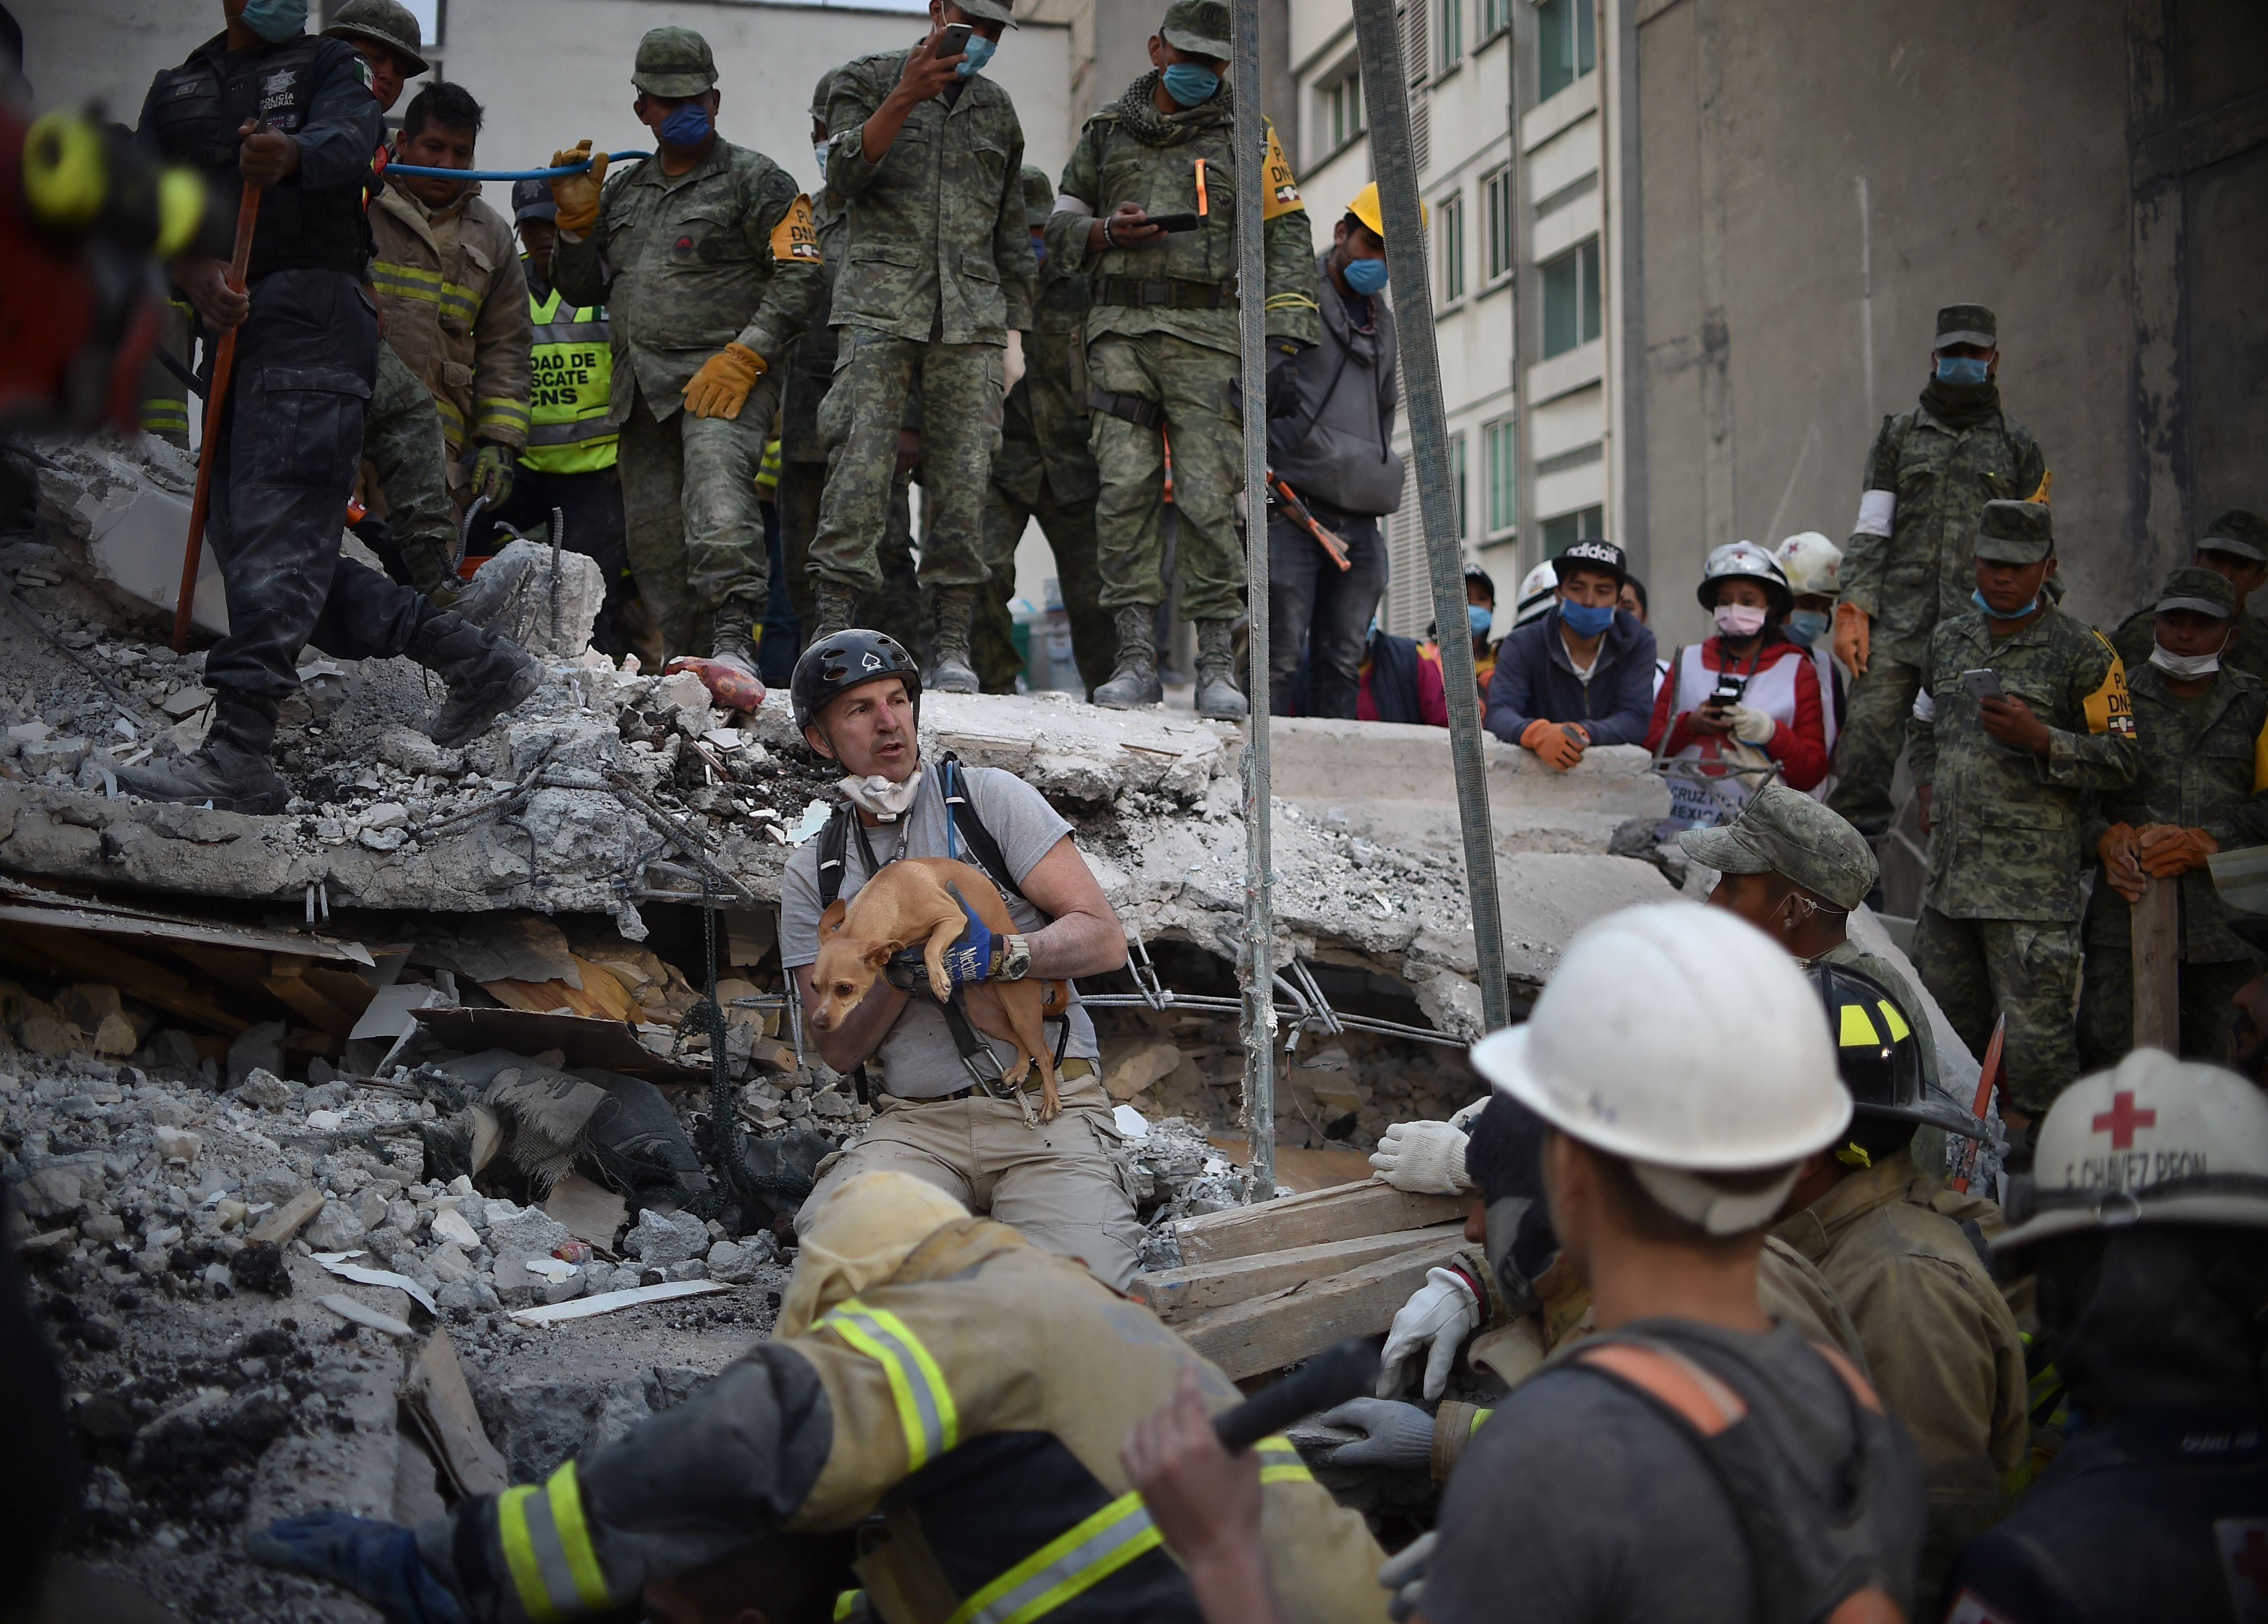 A rescuer pulls a dog out of the rubble during the search for survivors in Mexico City on Sept. 20, 2017, after a strong quake hit central Mexico. (Credit: YURI CORTEZ/AFP/Getty Images)